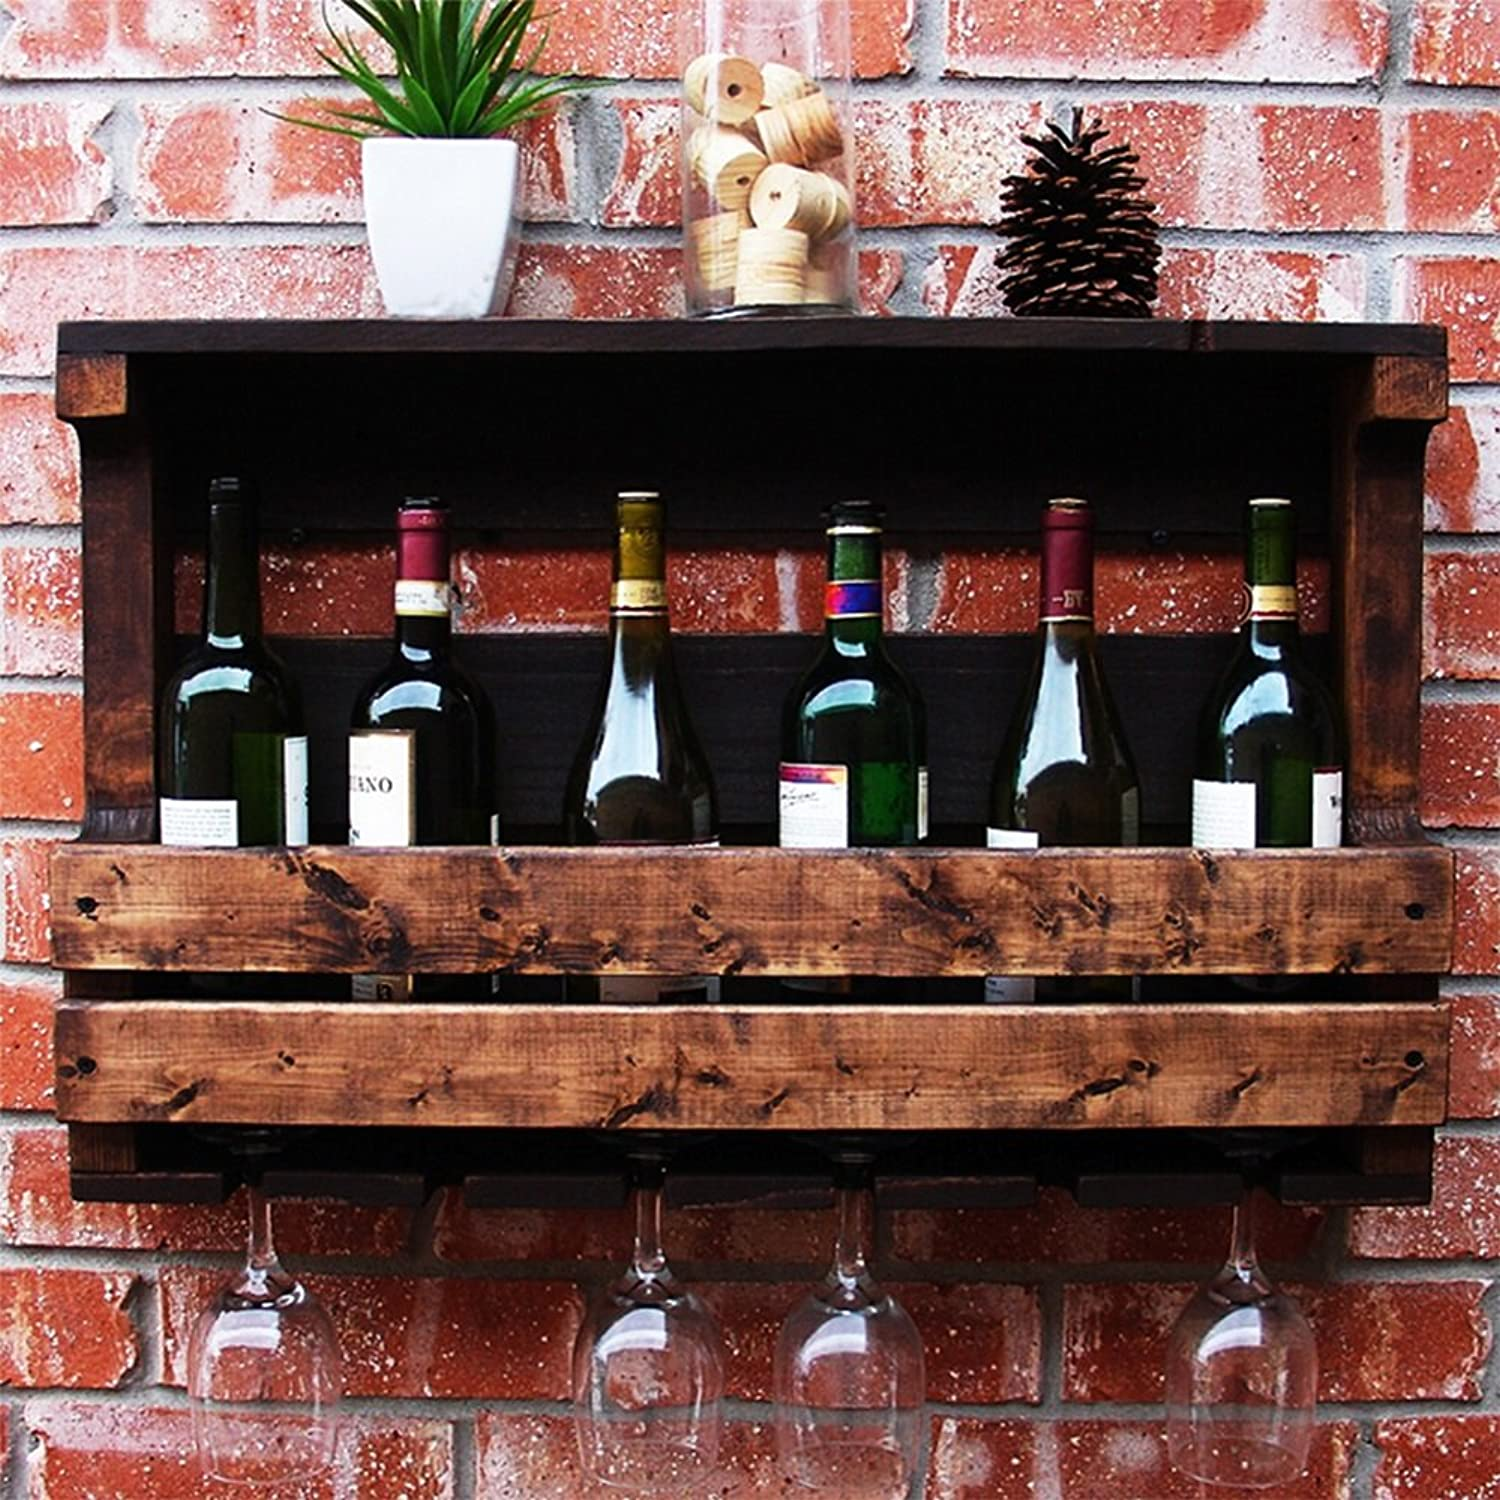 YD Wine Rack Solid Wood Walnut Wall Hanging Wine Glass Cup Suitable for Many Occasions Safe and Comfortable Durable 2 Sizes 2 Styles 50cm  Can Put 4 Bottles; 70cm  Can Put 6 Bottles